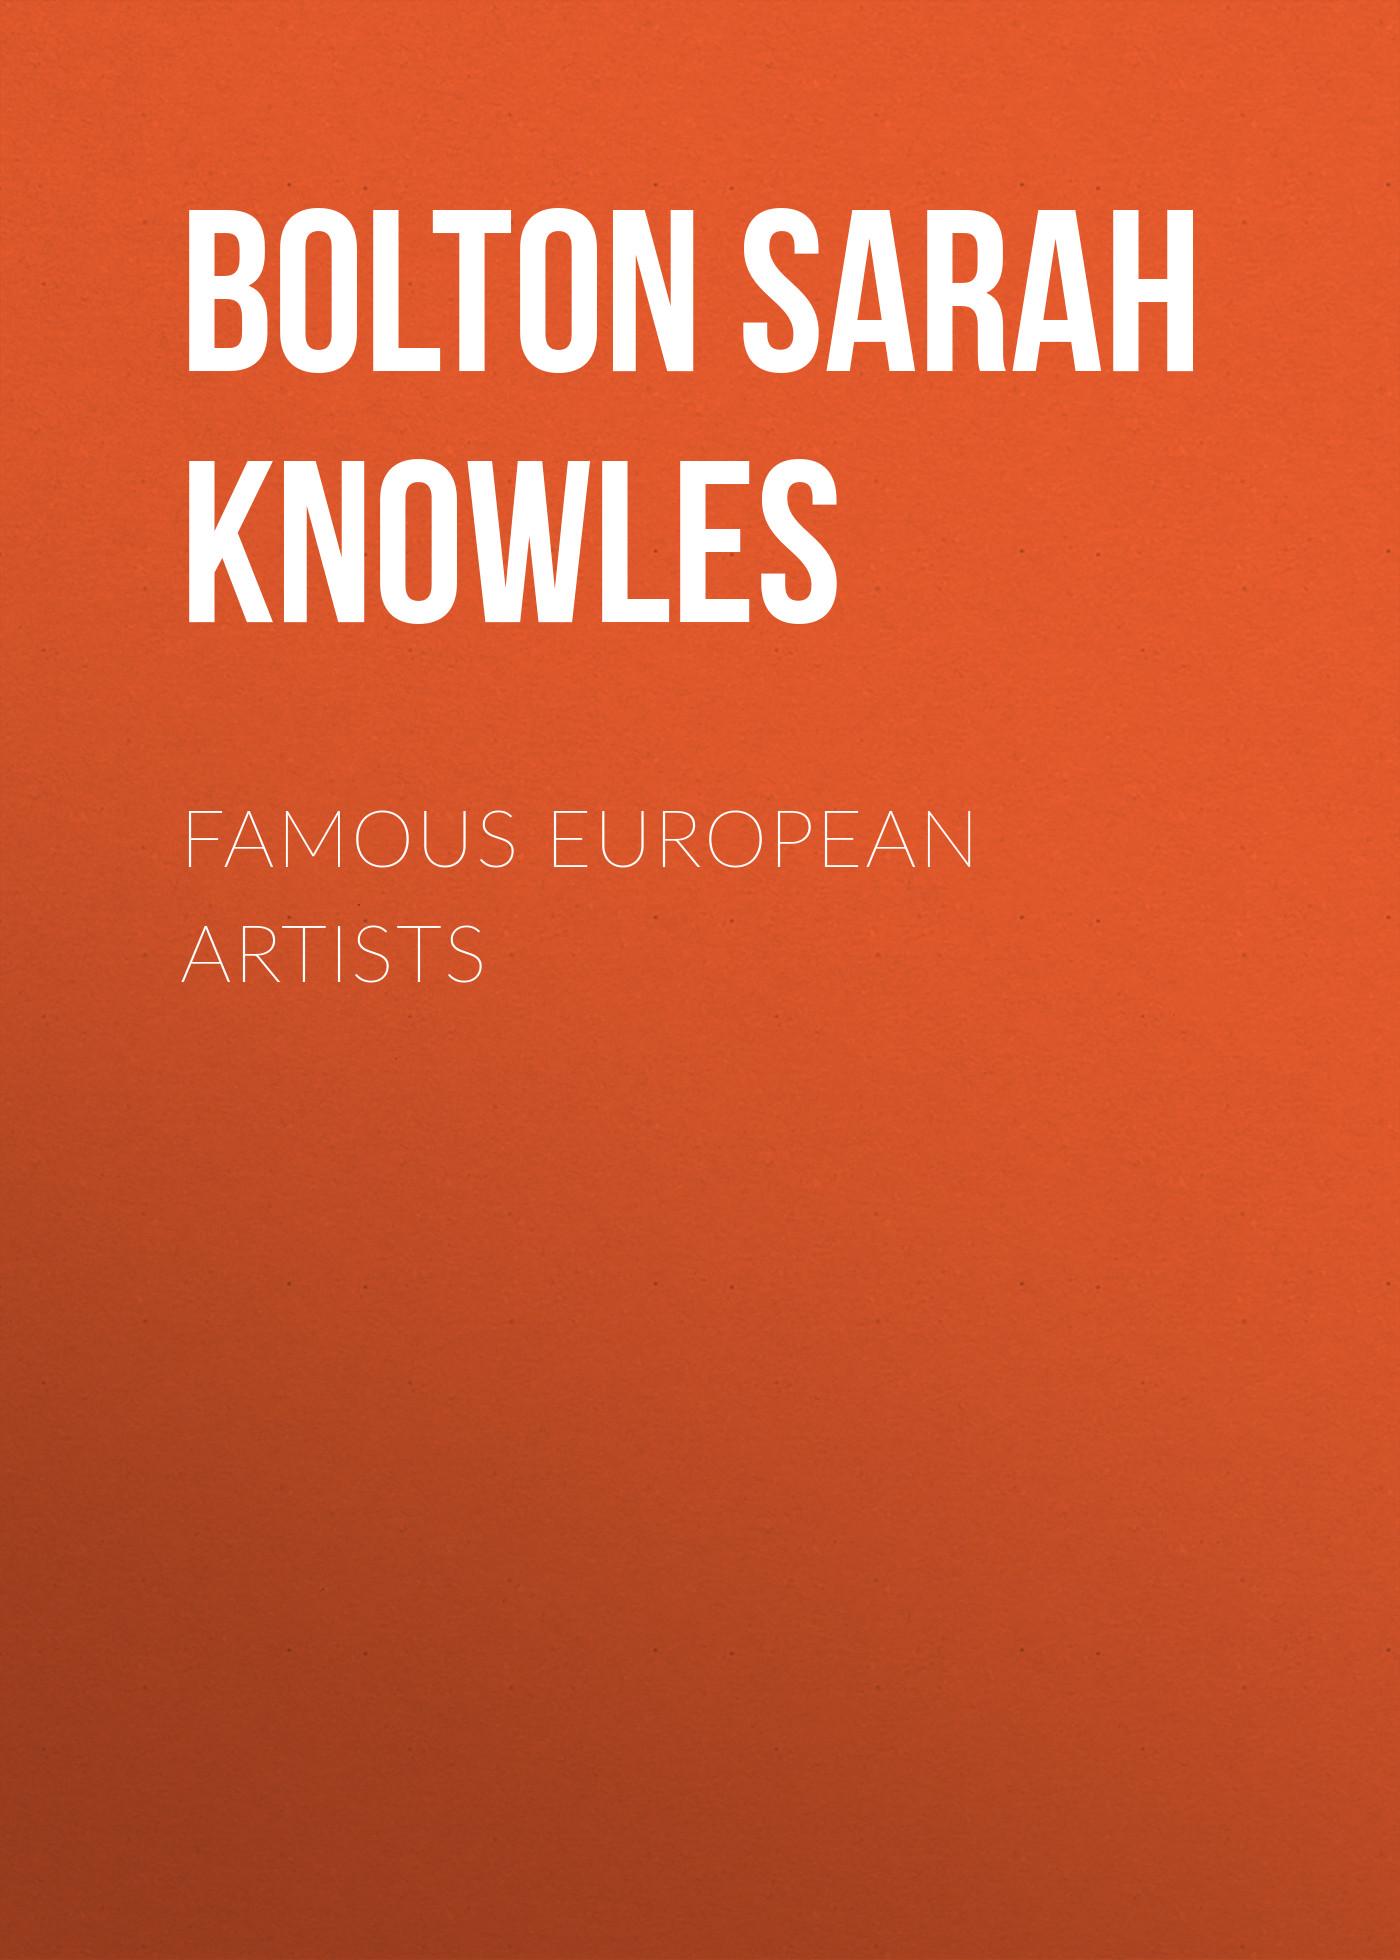 Bolton Sarah Knowles Famous European Artists millwall bolton